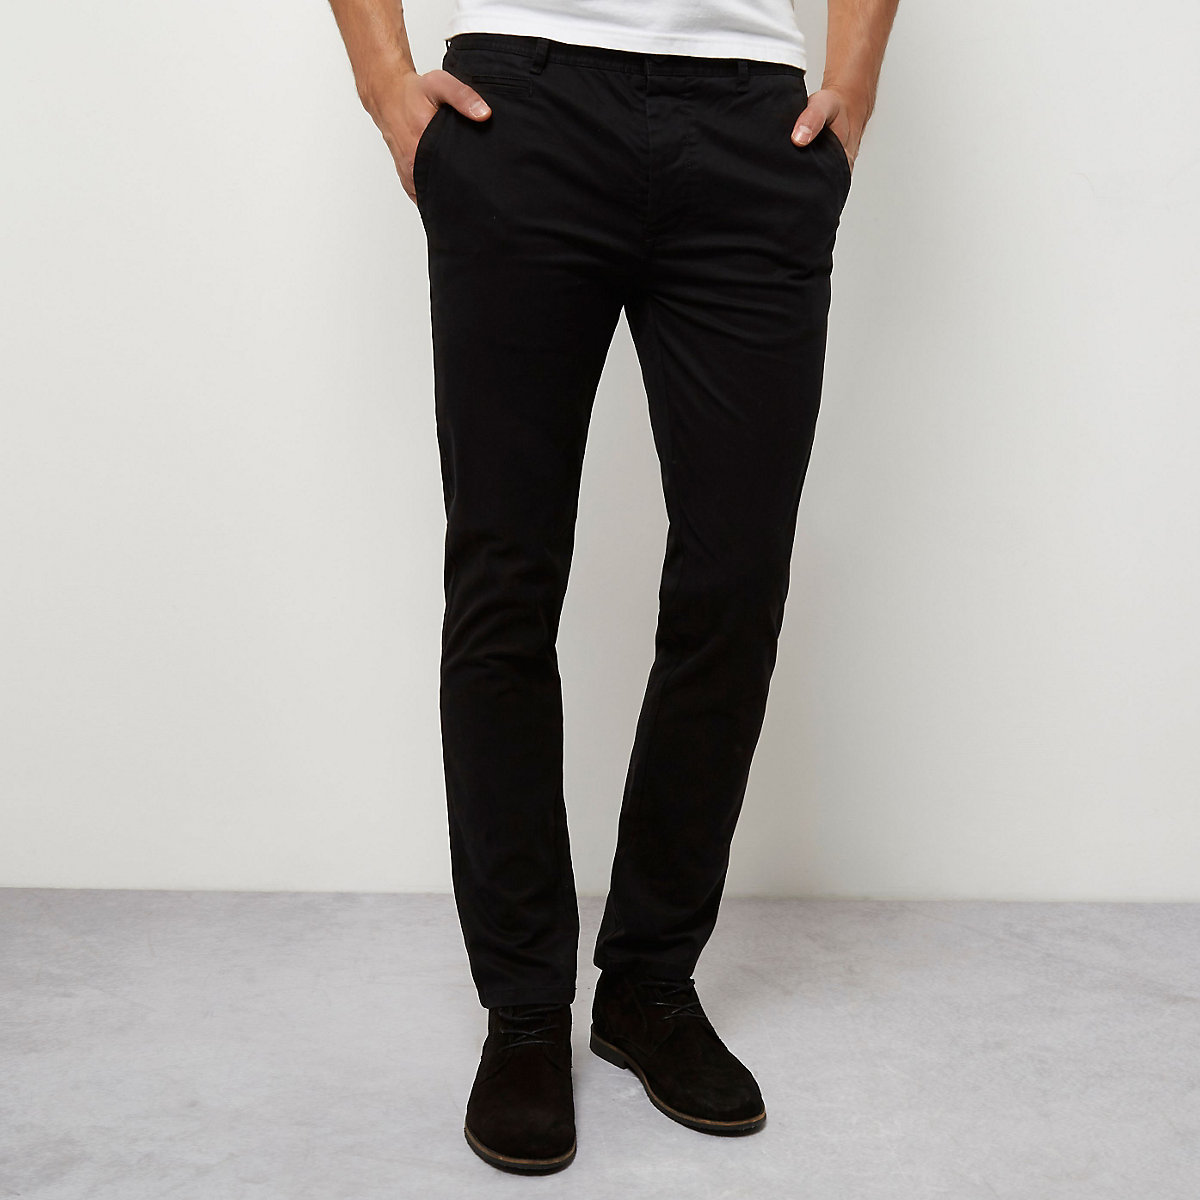 Black stretch skinny chino pants